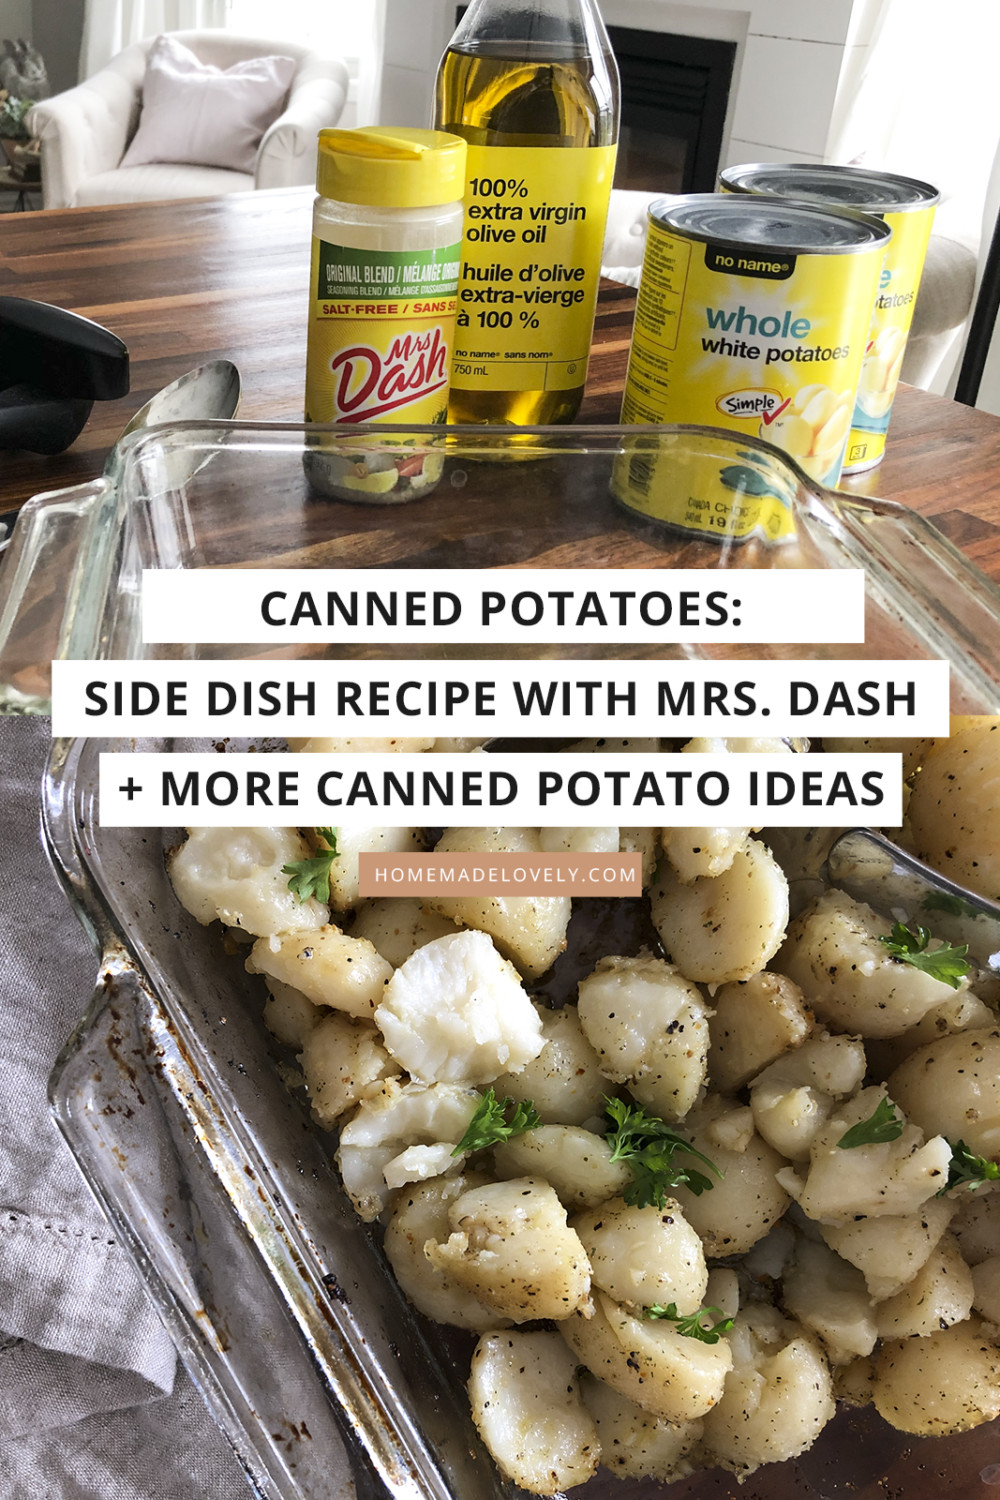 canned potatoes on counter and also cooked in a glass pan